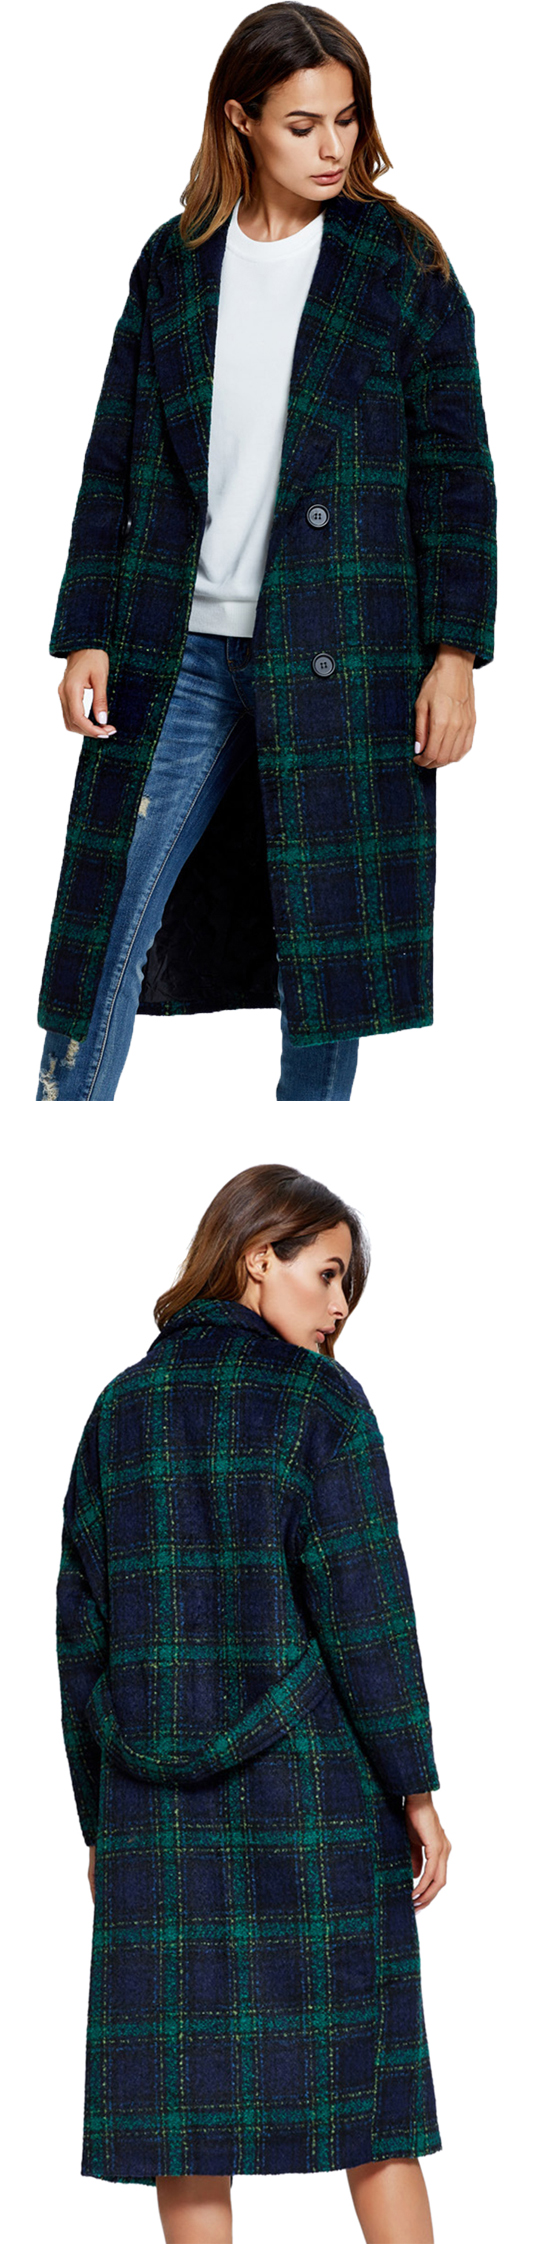 MYNYSTYLE | Green Plaid Lapel Double Breasted Wool Blend Longline Coat